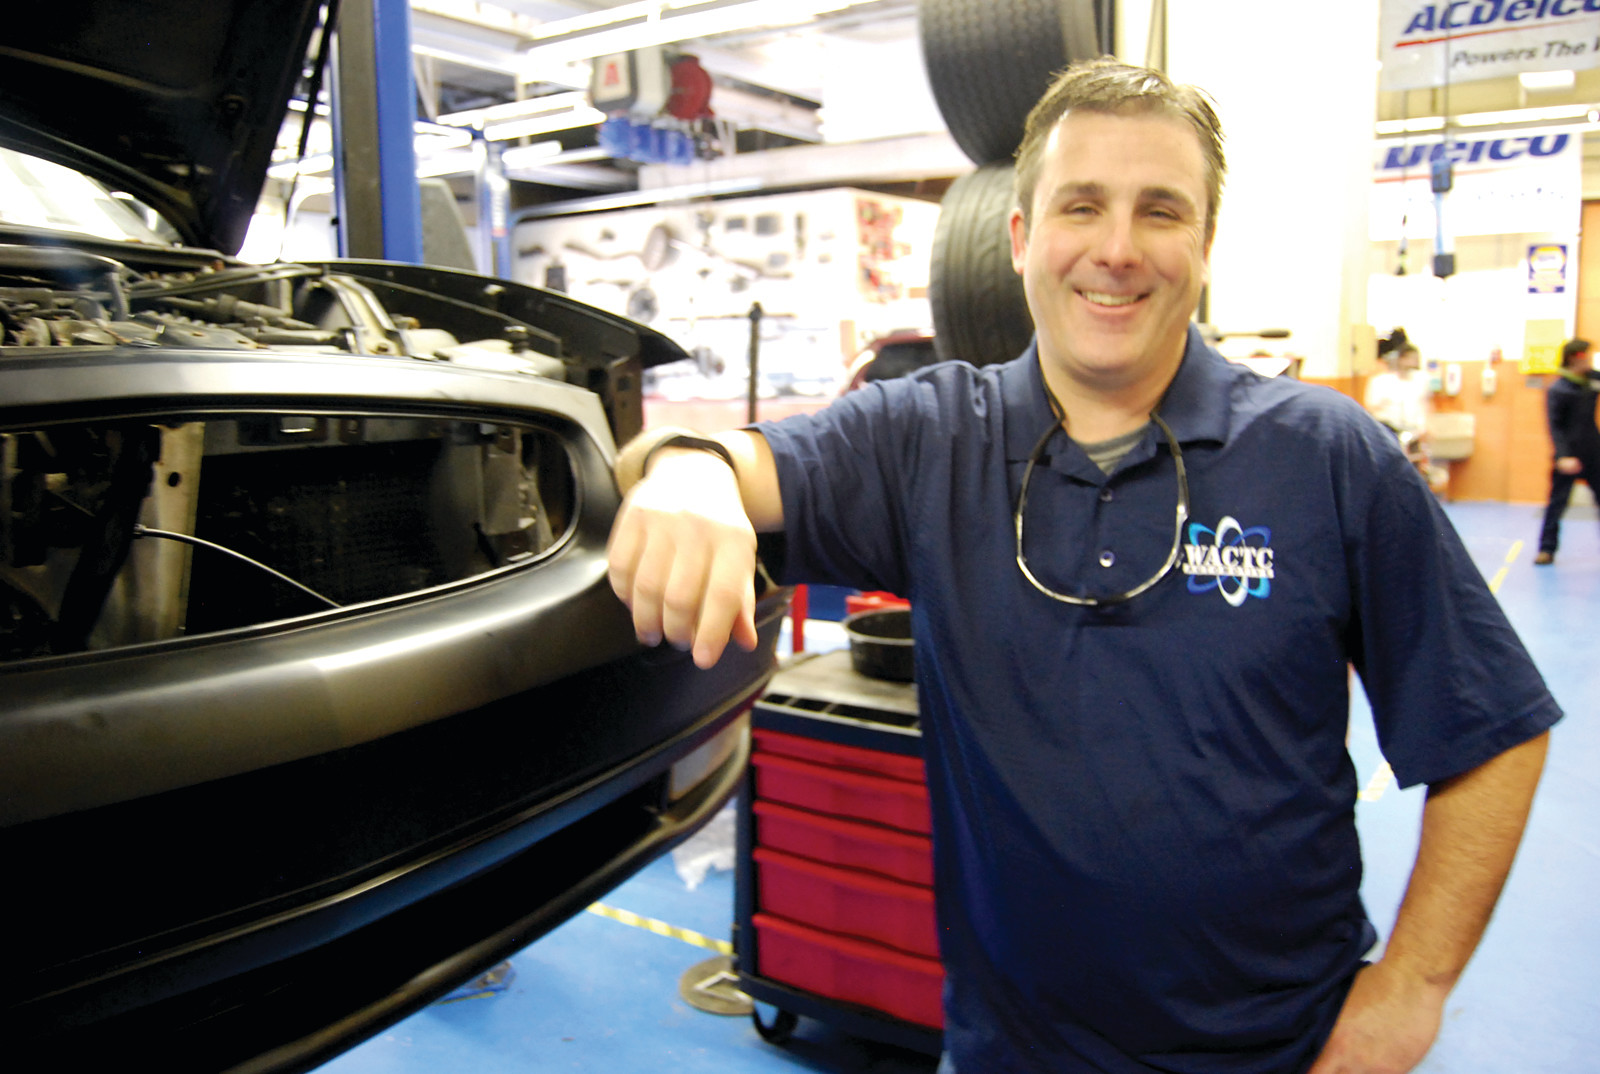 A FUTURE IN CARS: David Tibbetts, instructor at the Warwick Area Career and Technical Center finds the skills taught in the program transferable to many jobs.